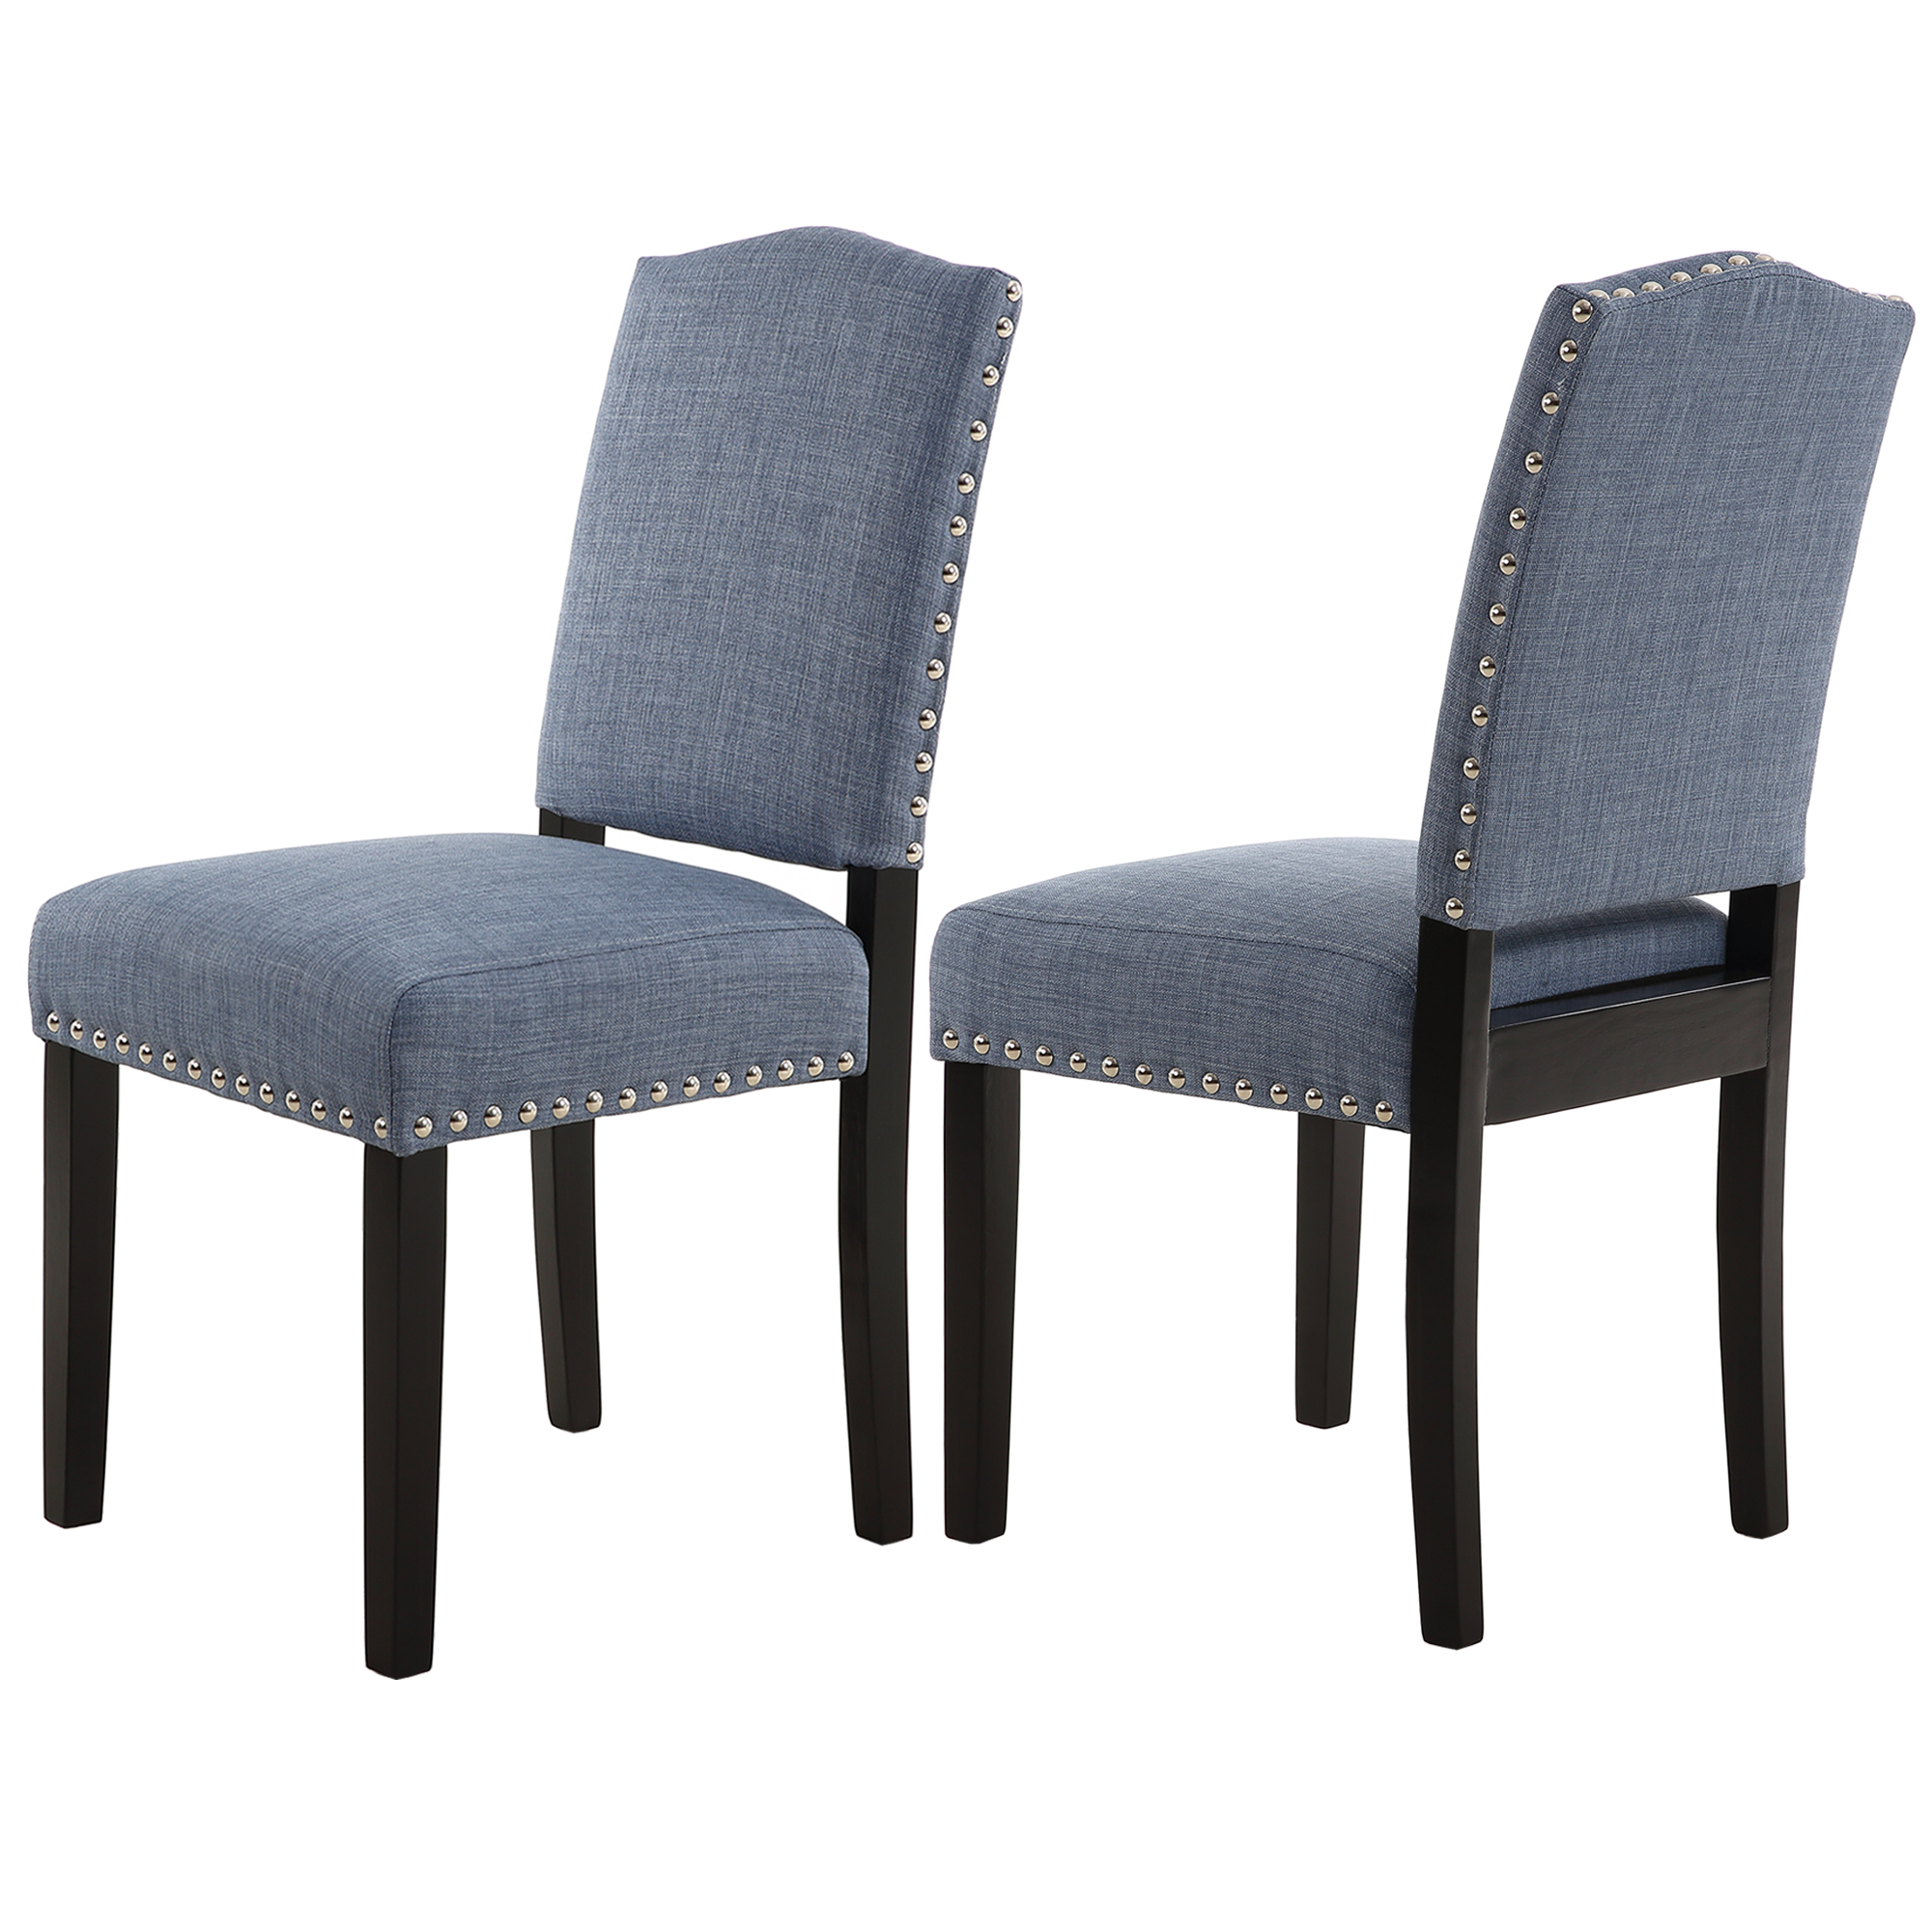 Set of 2 LSSBOUGHT Nailhead Barstools with Solid Wood Legs Grey